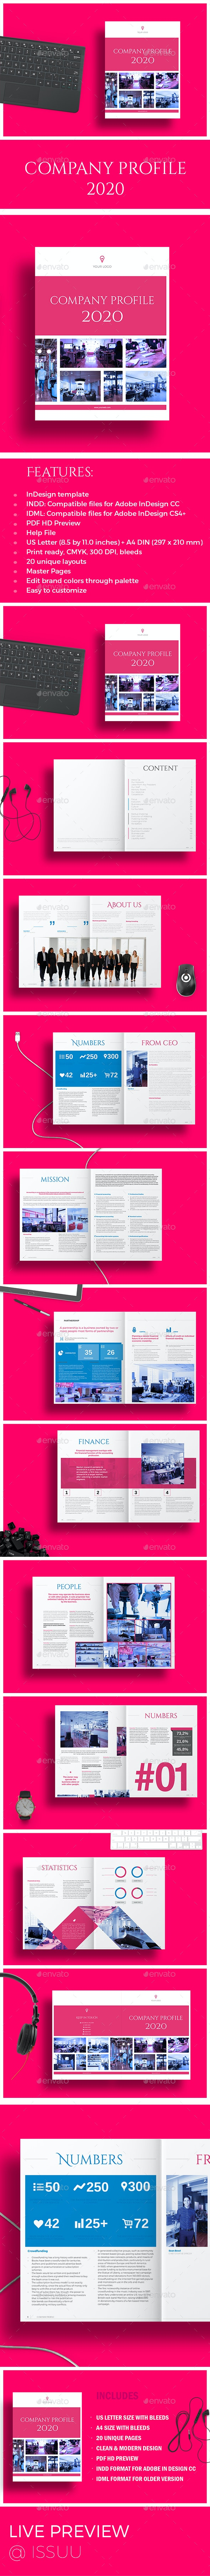 Company Profile 2020 - Corporate Brochures